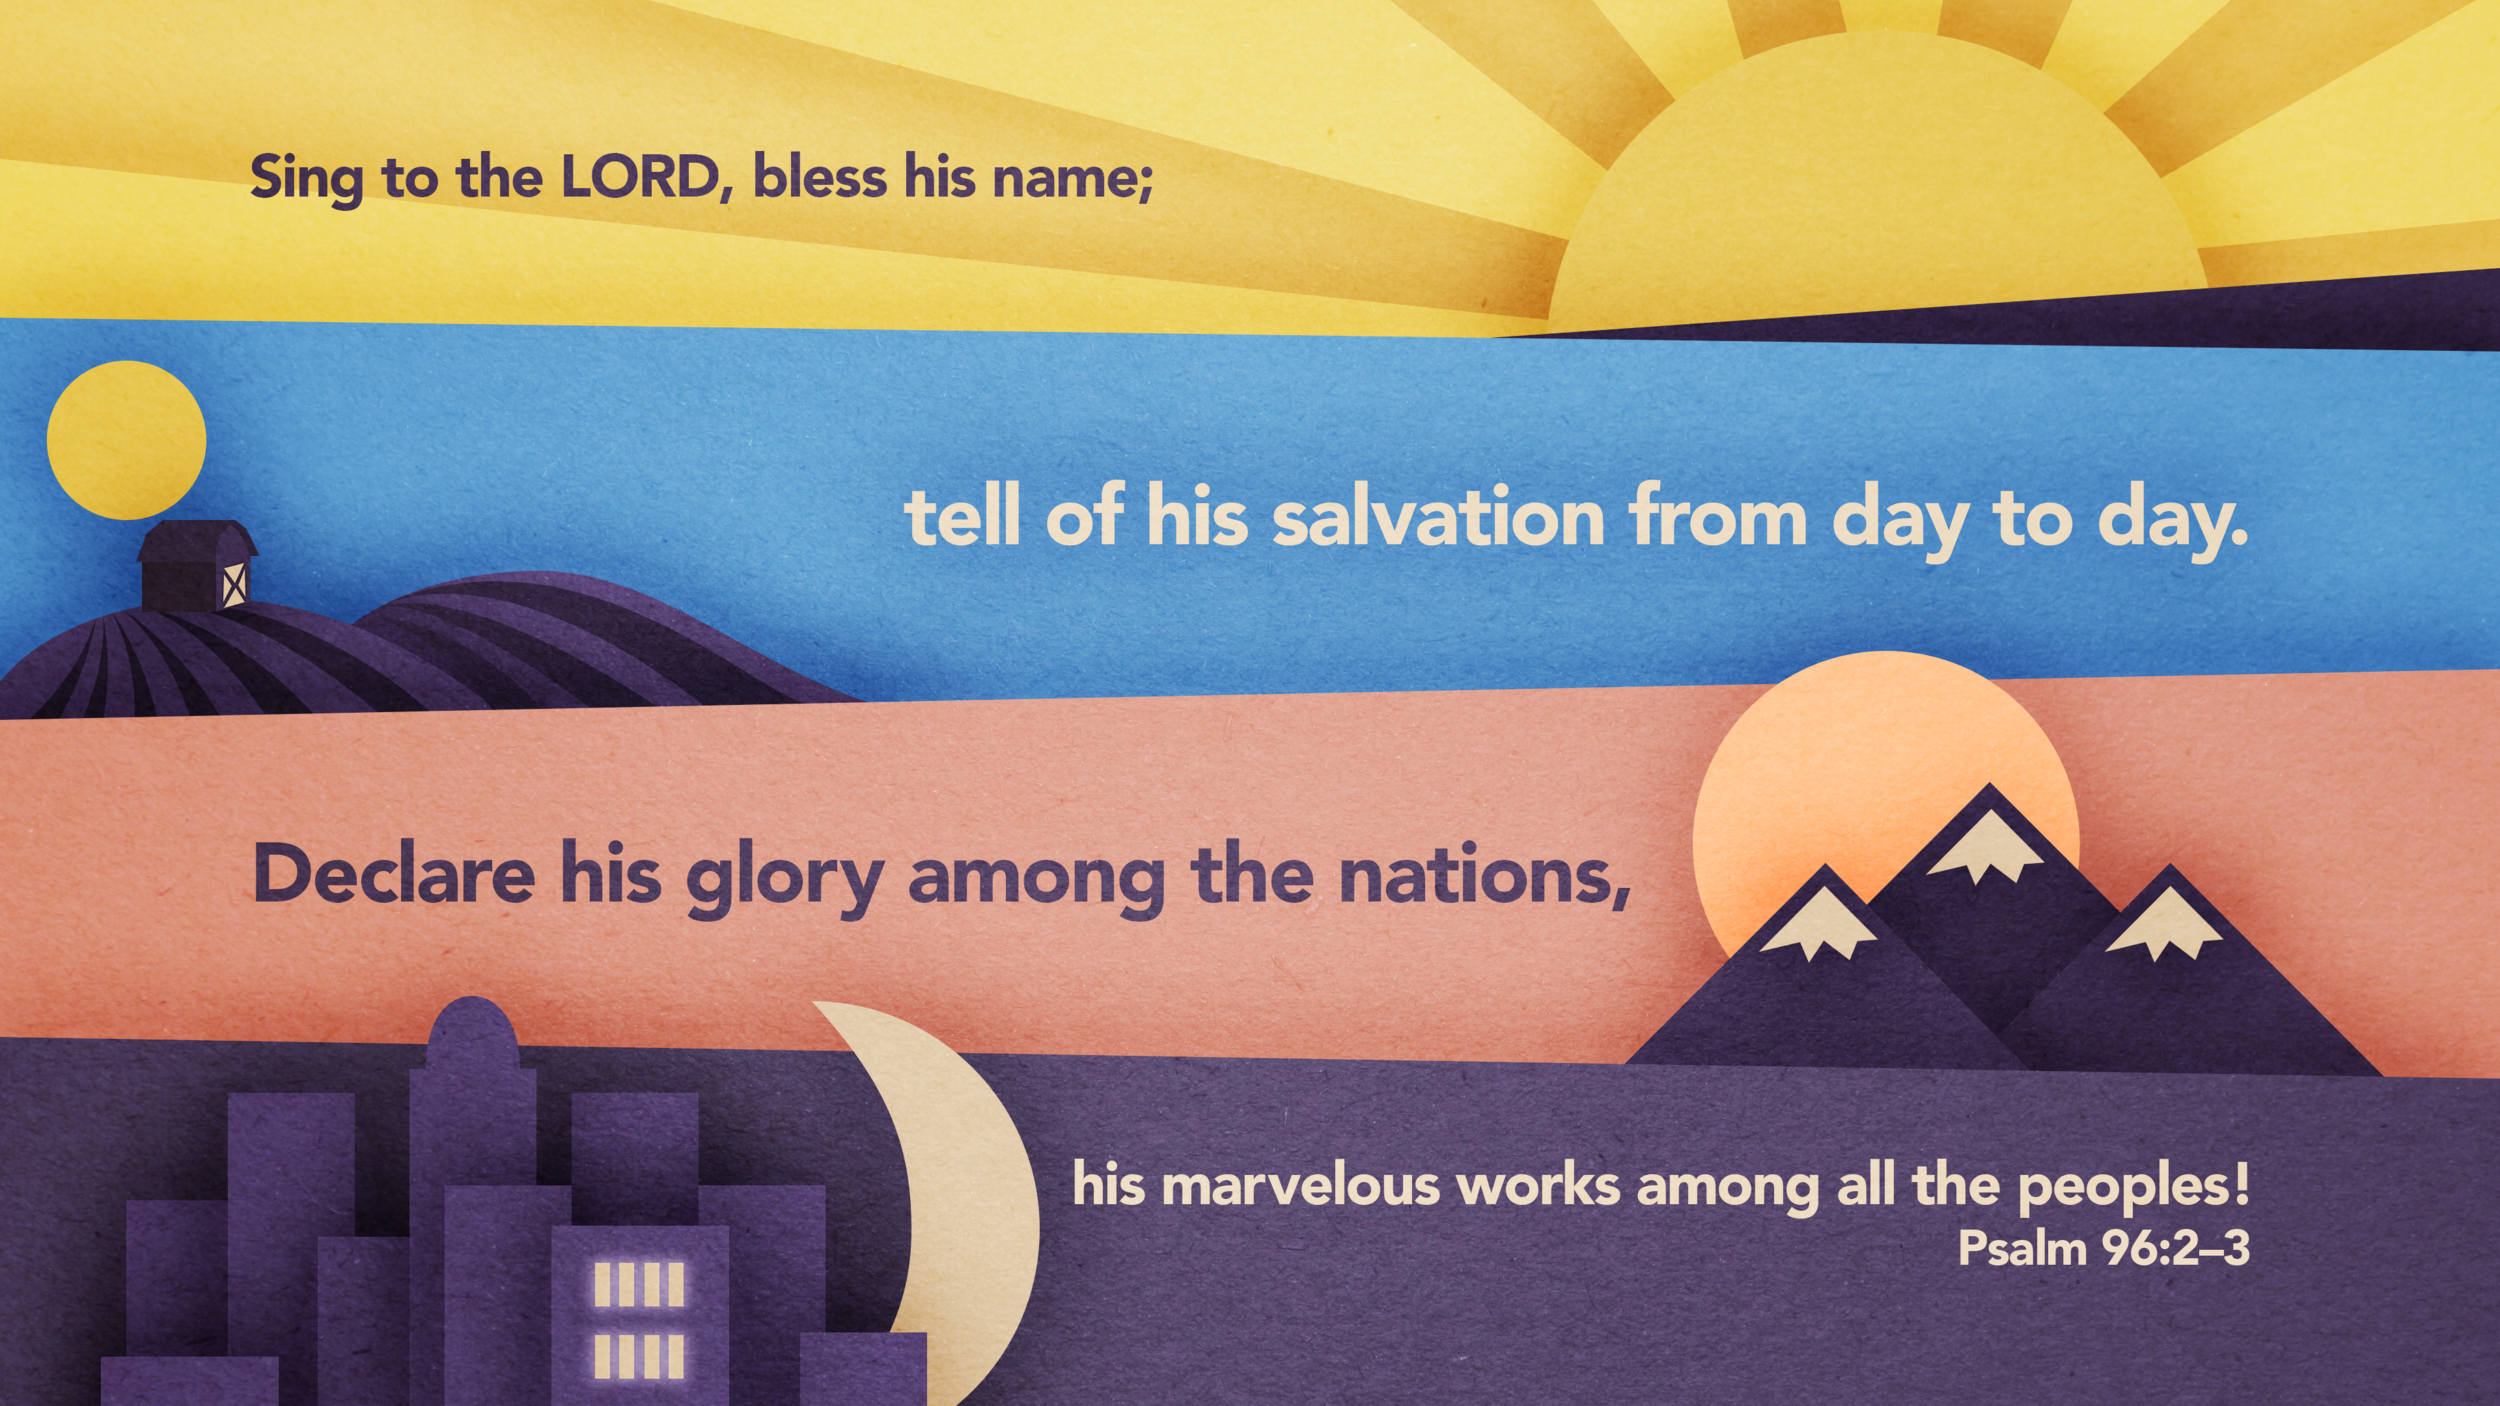 Psalm_96_2_3-3840x2160.png